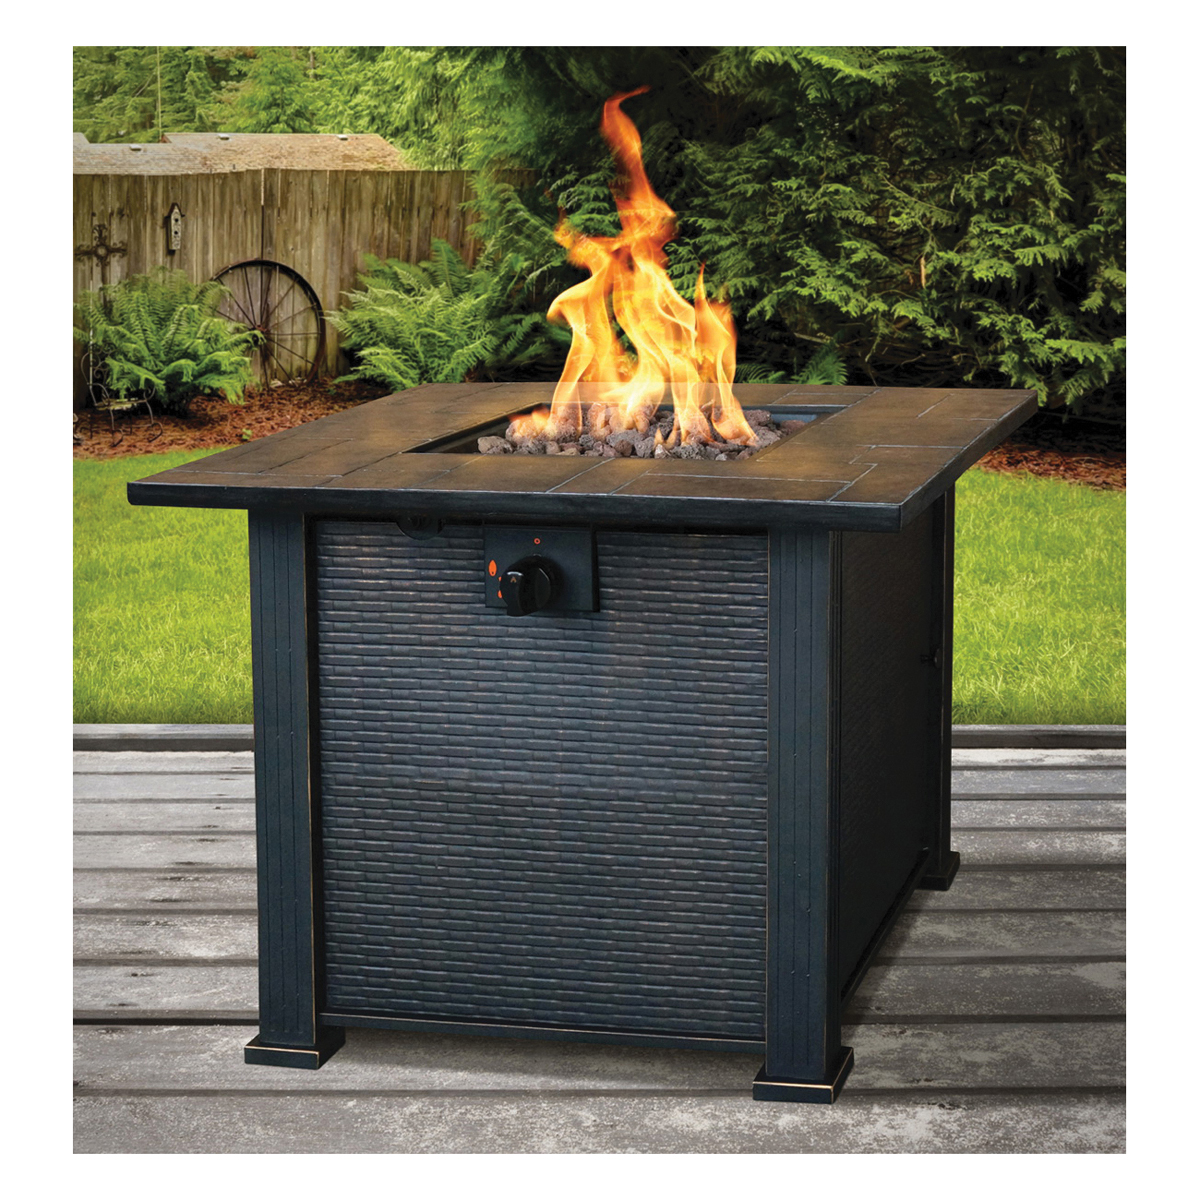 Picture of Seasonal Trends 50169 Table Patio Fire Essential